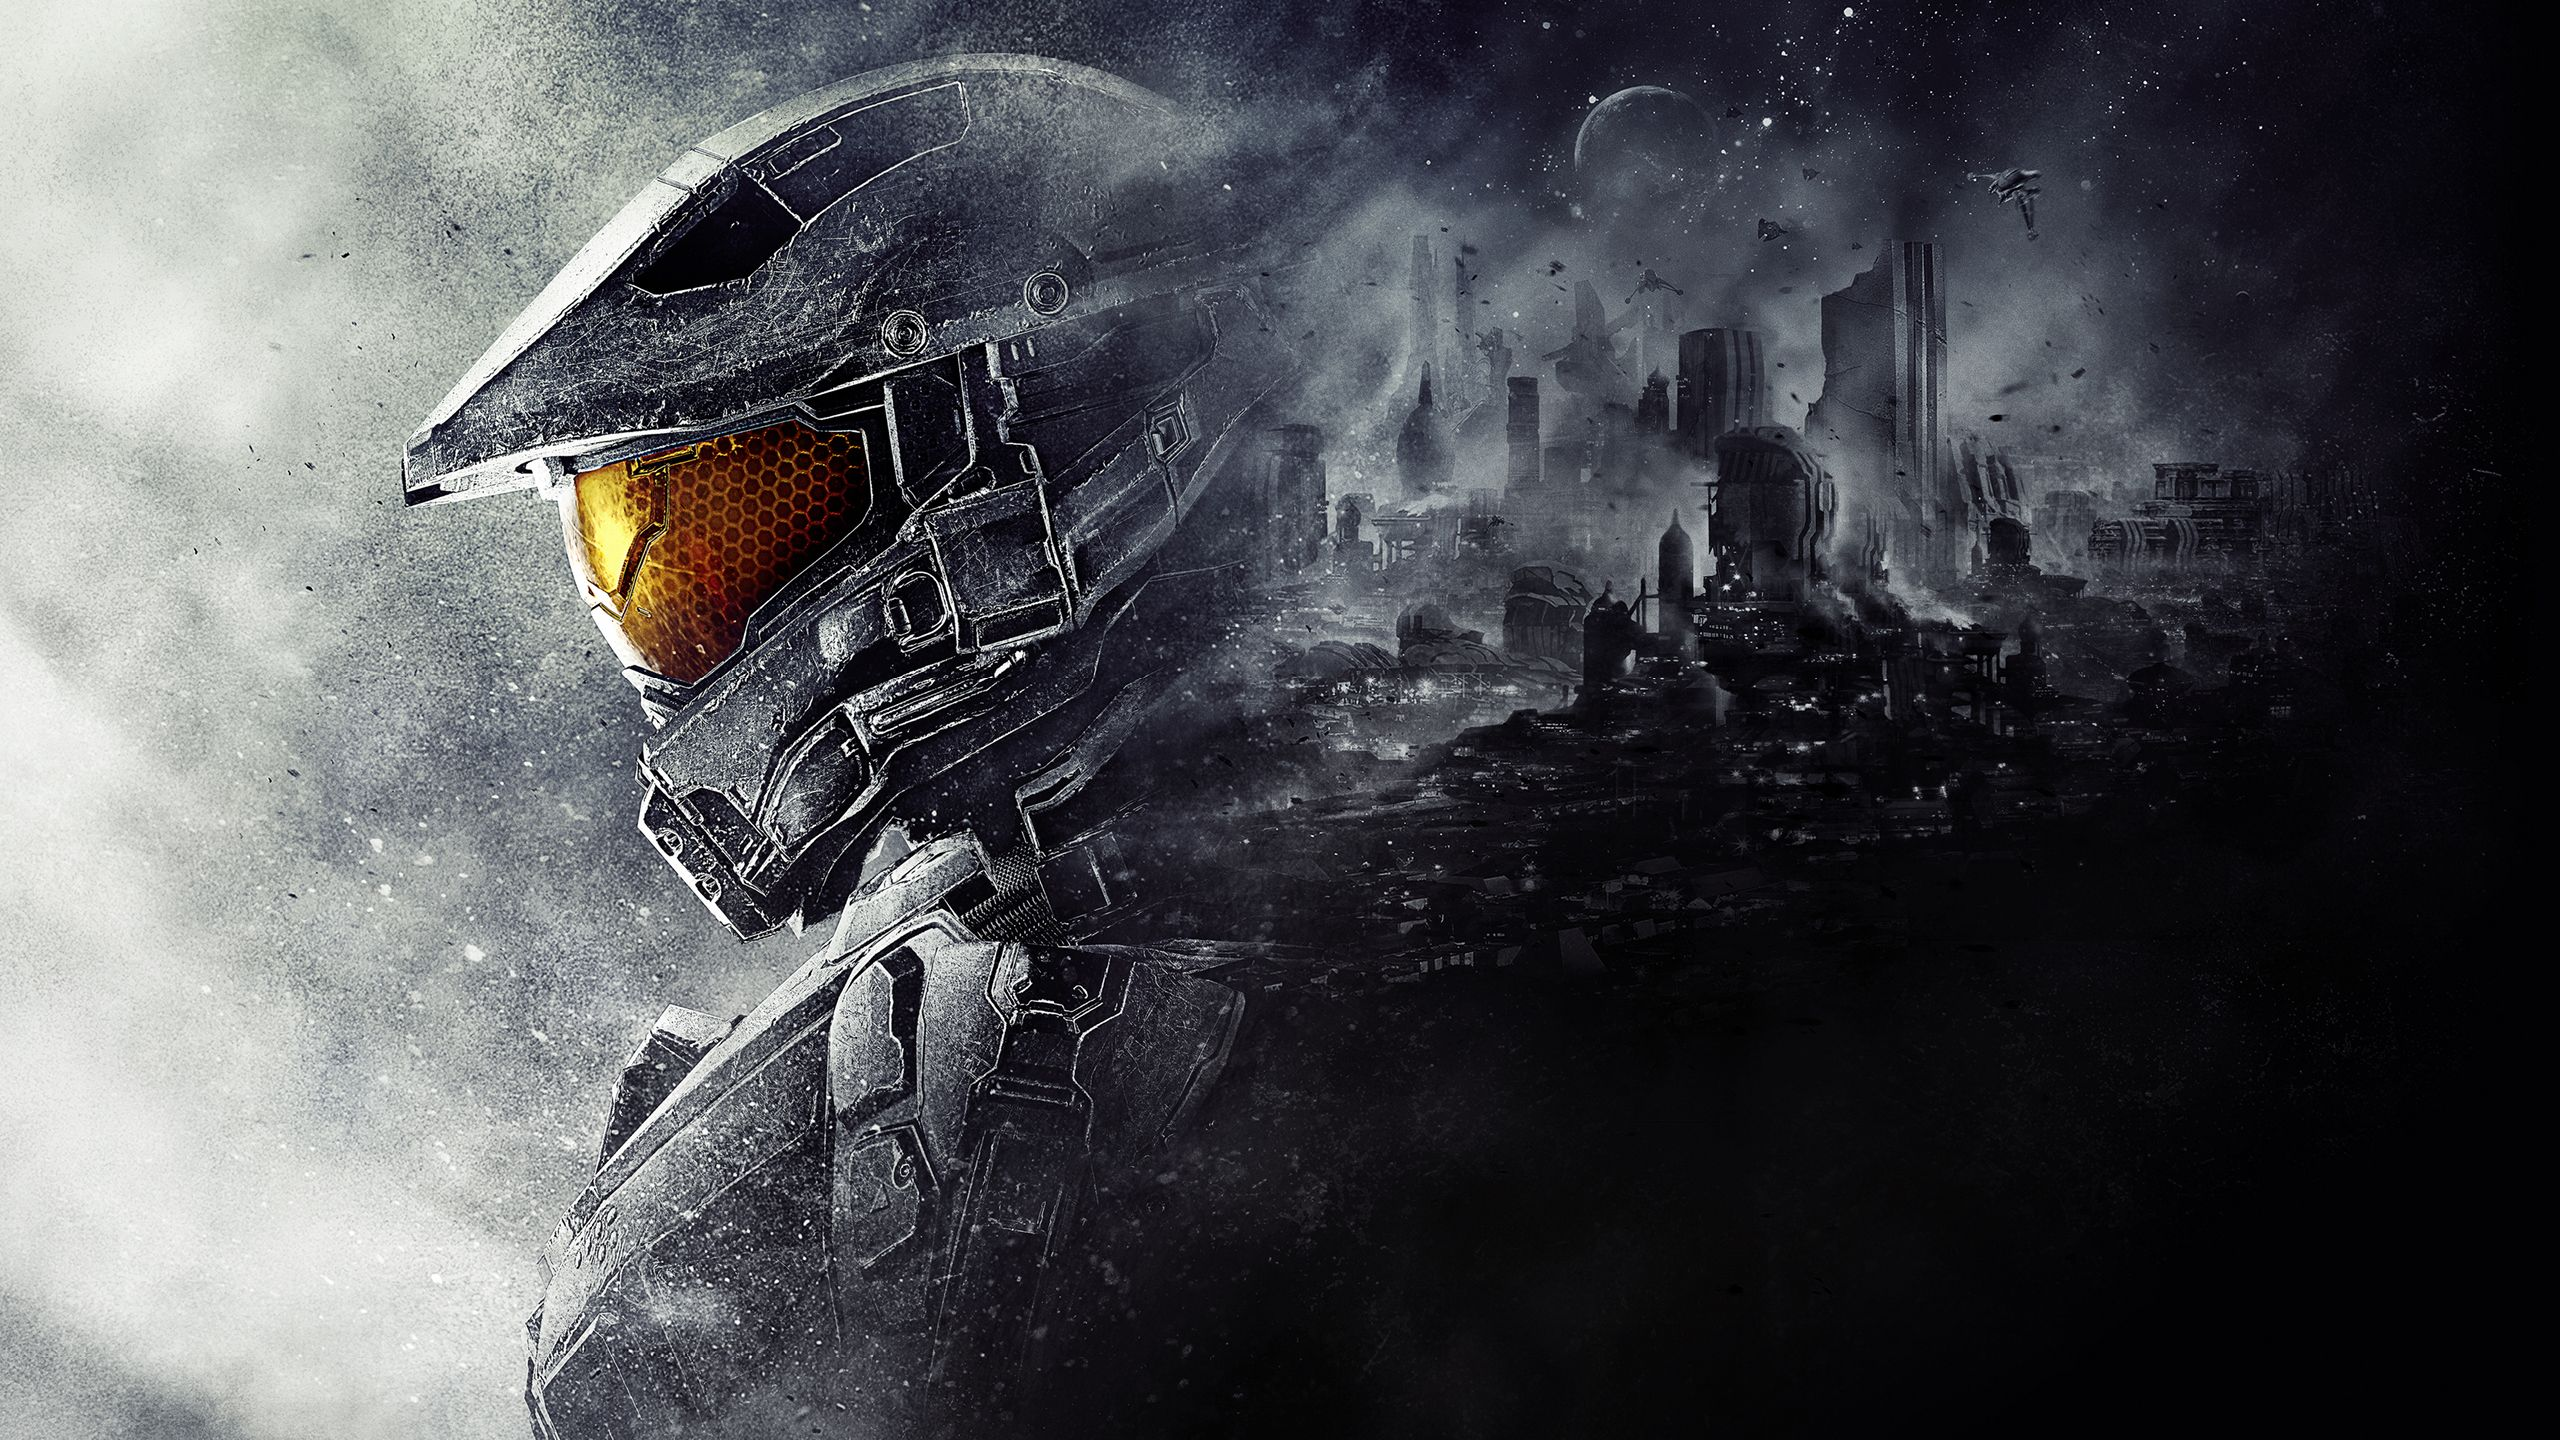 Download Master Chief Hd Lumia Hd Wallpaper For Free In High